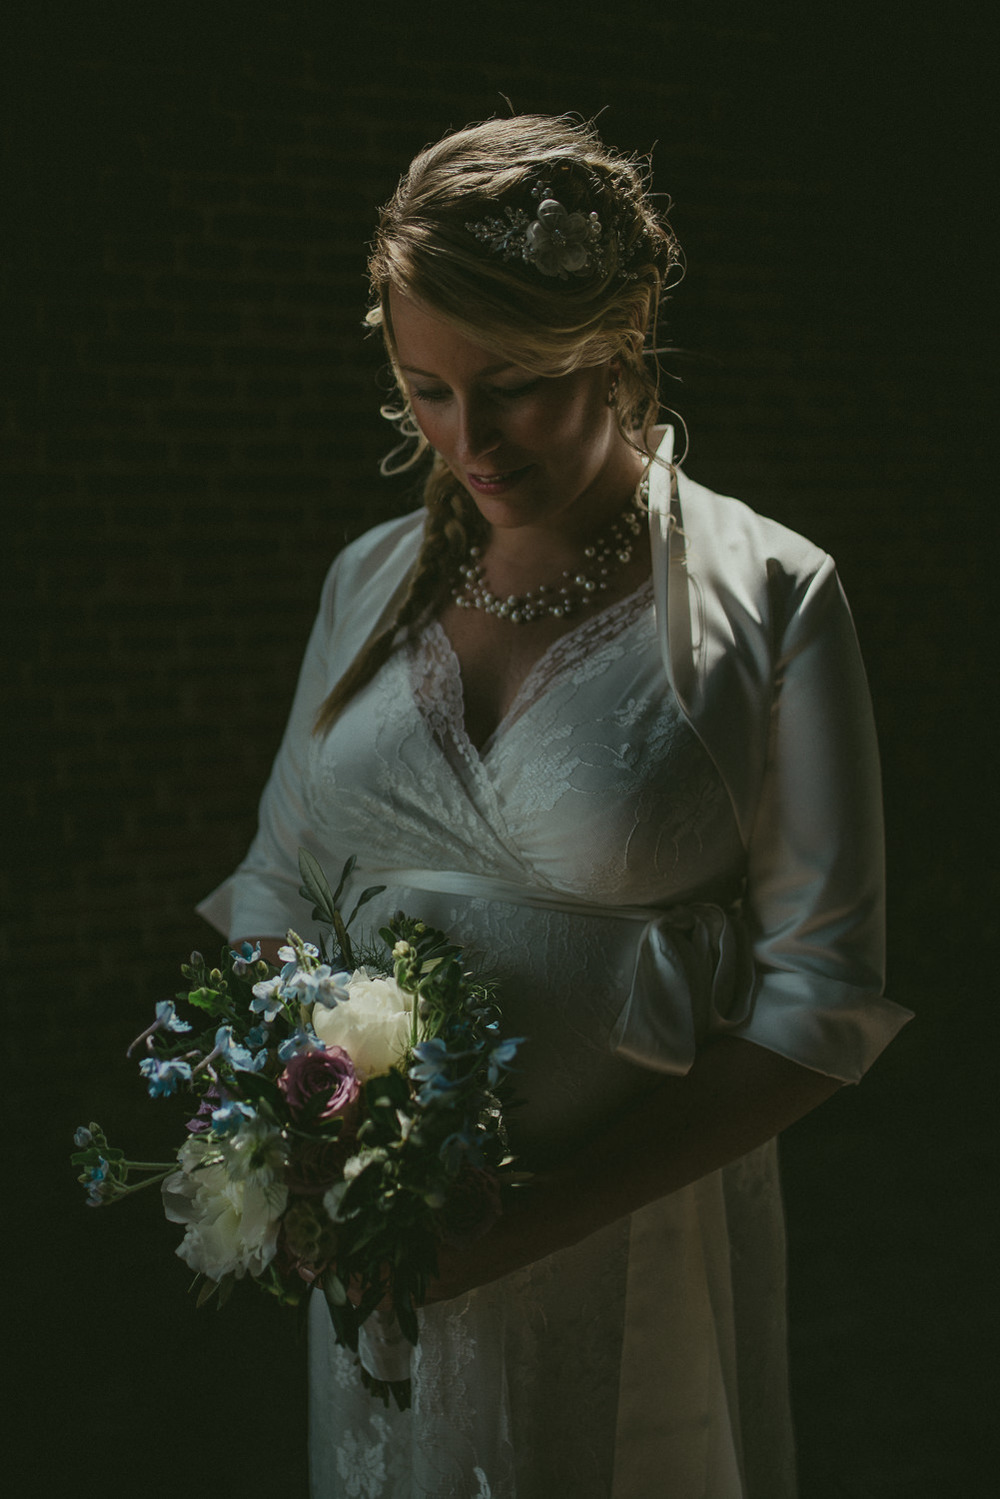 Bruidsfotografie Amsterdam - Bride with Flowers